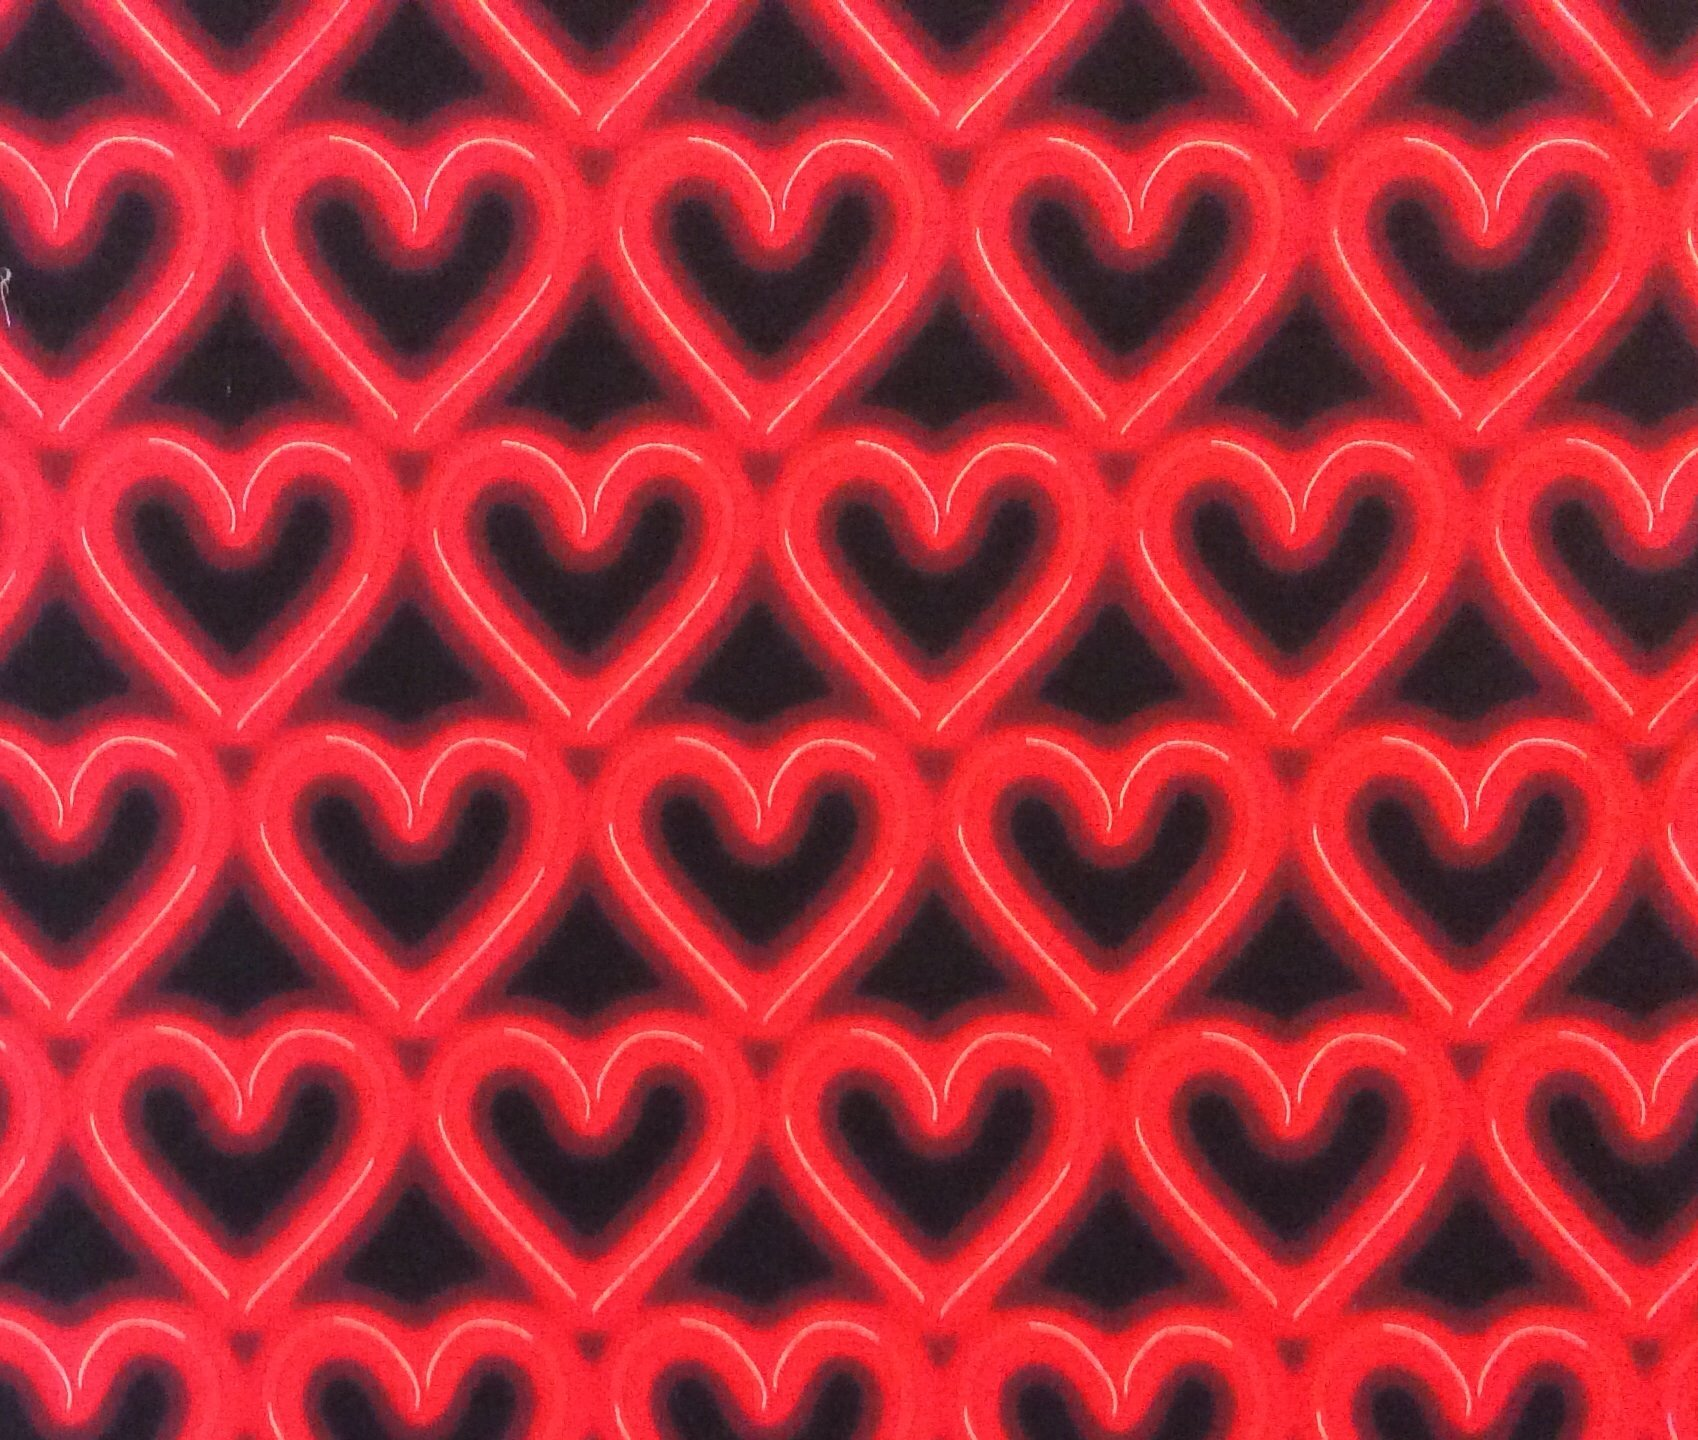 MD240 Neon Heart Red Light Love Passion Fluorescent Cotton Quilting Fabric